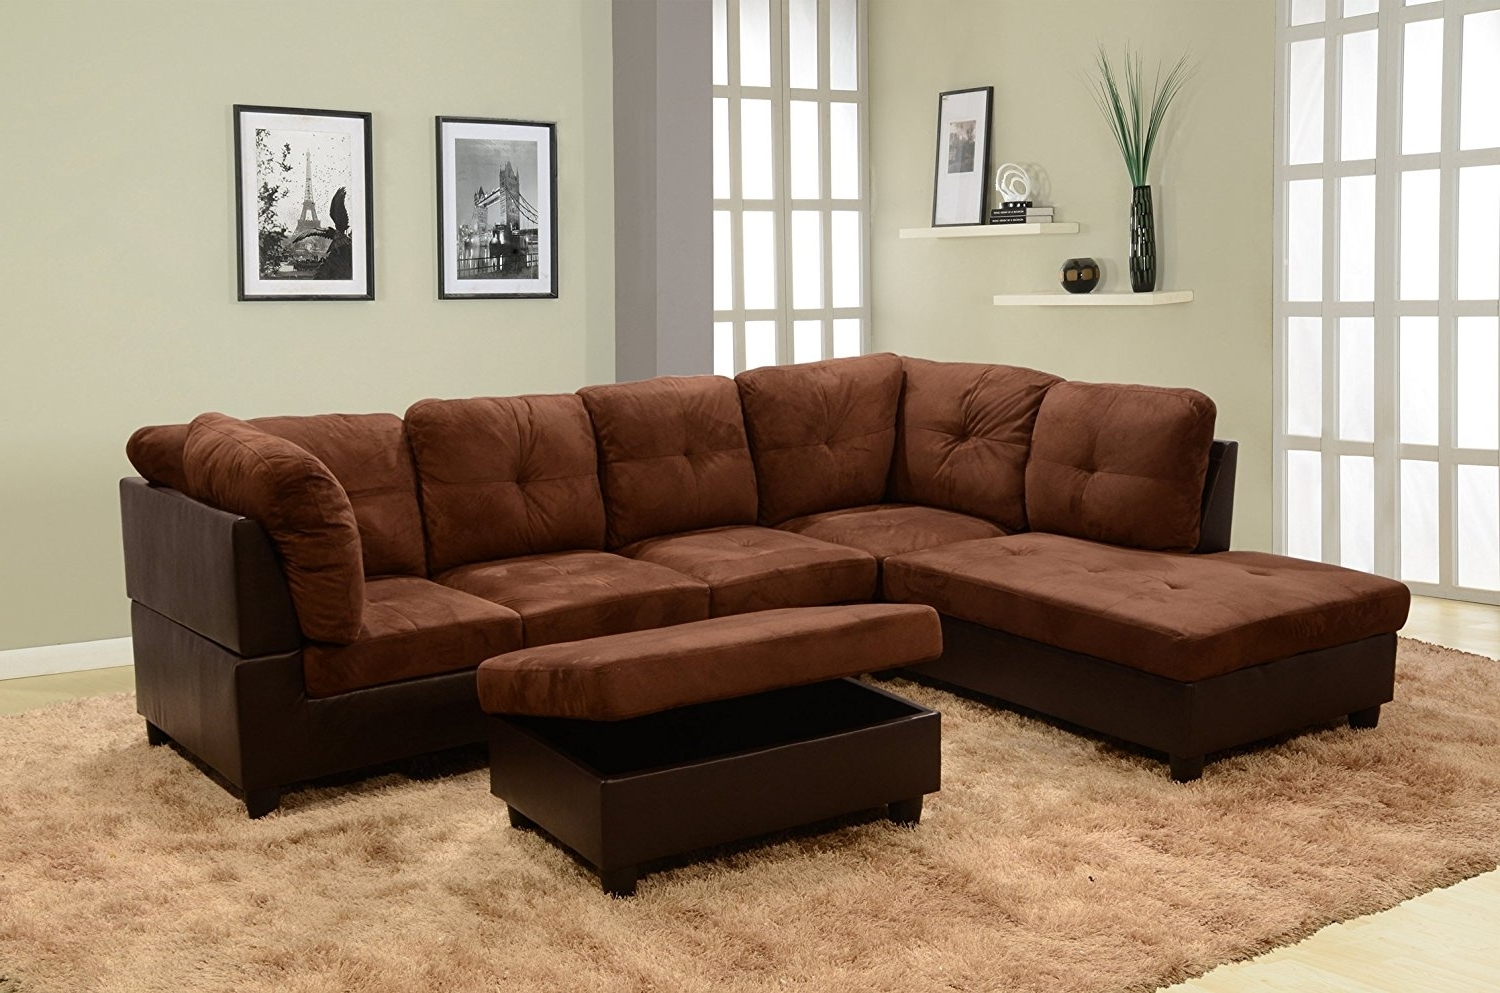 Best And Newest Elliot Fabric Microfiber 2 Piece Sectional Sofa Elliot Fabric Pertaining To Sectional Sofas With 2 Chaises (View 14 of 20)